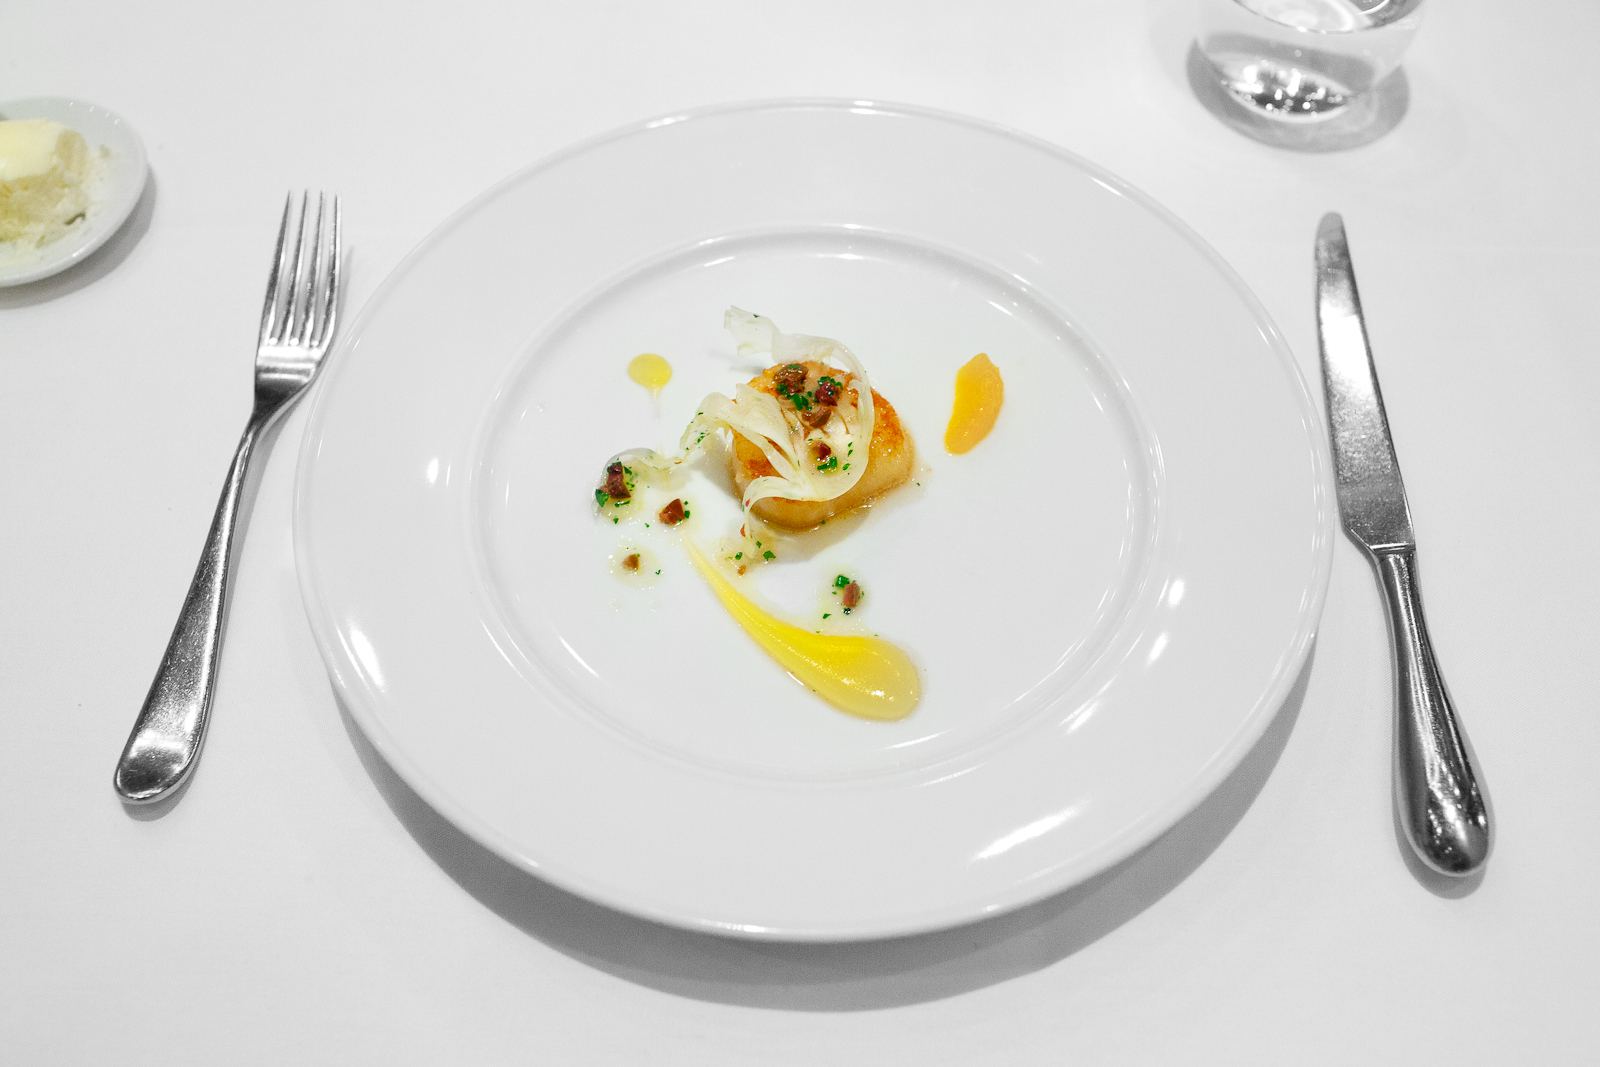 6th Course: Capesante - sea scallop, fennel, satsuma mandarin, taggiasca olive